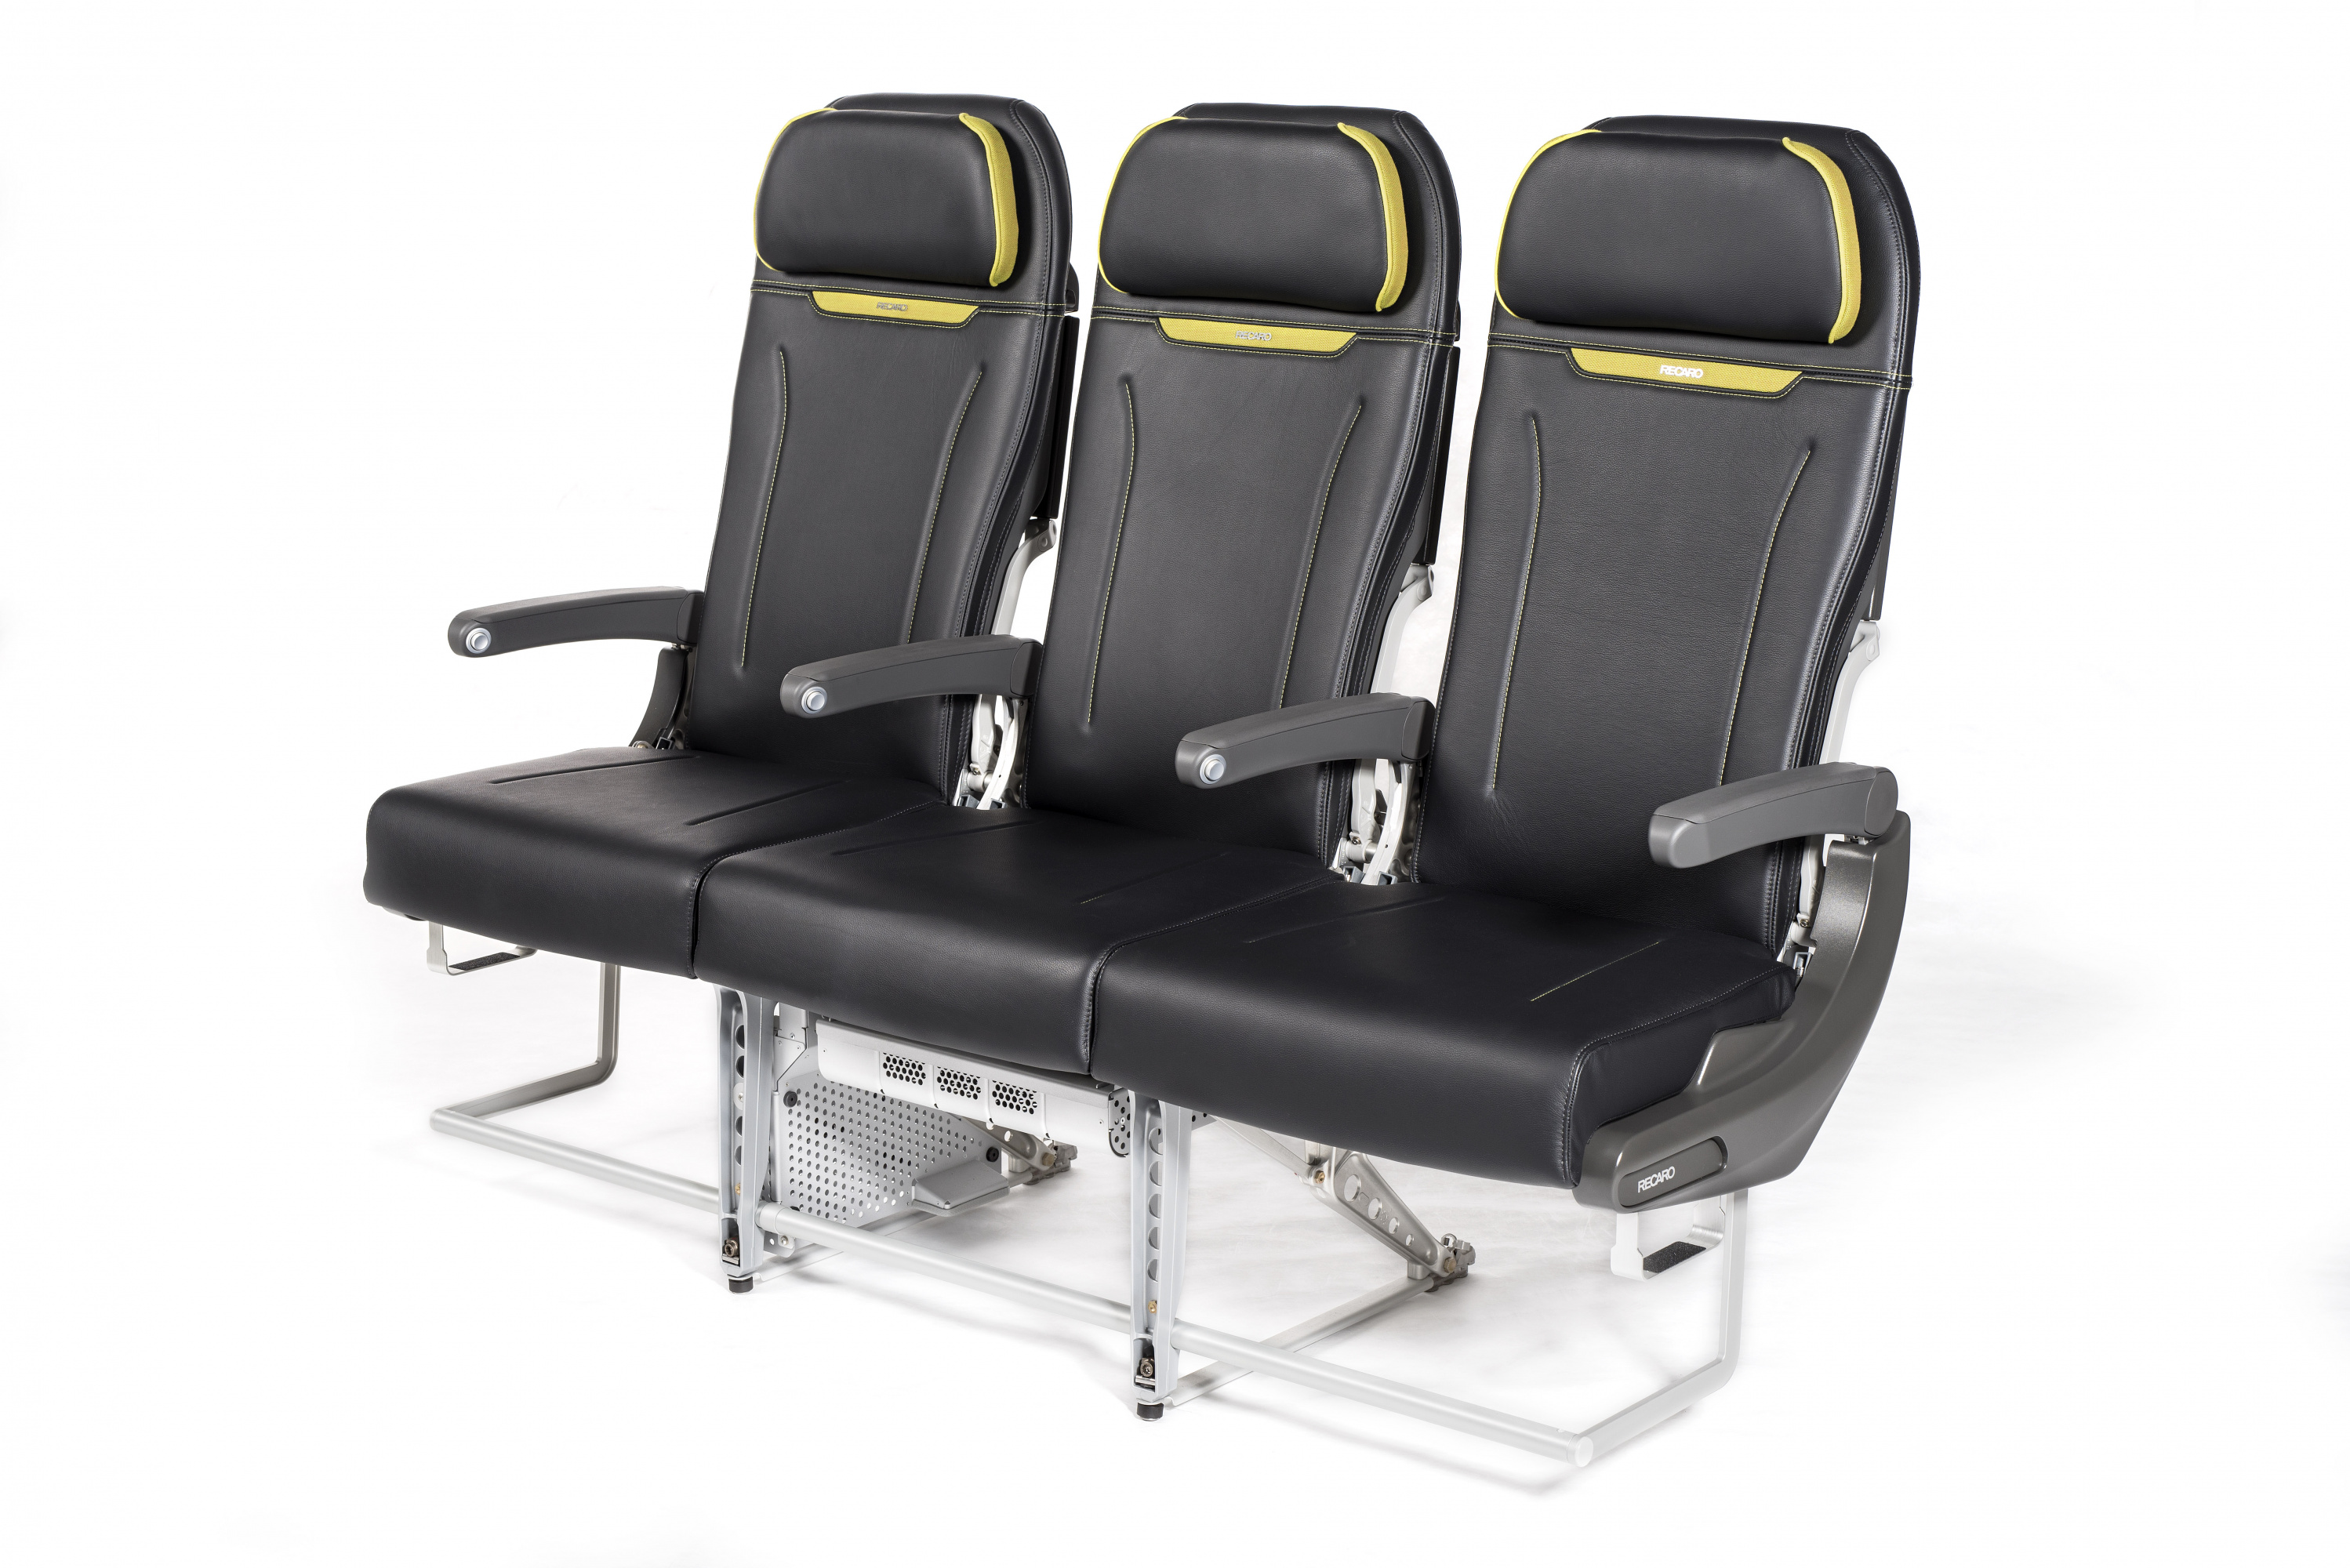 Spicejet Will Take Delivery Of Bl3530smart Seats From